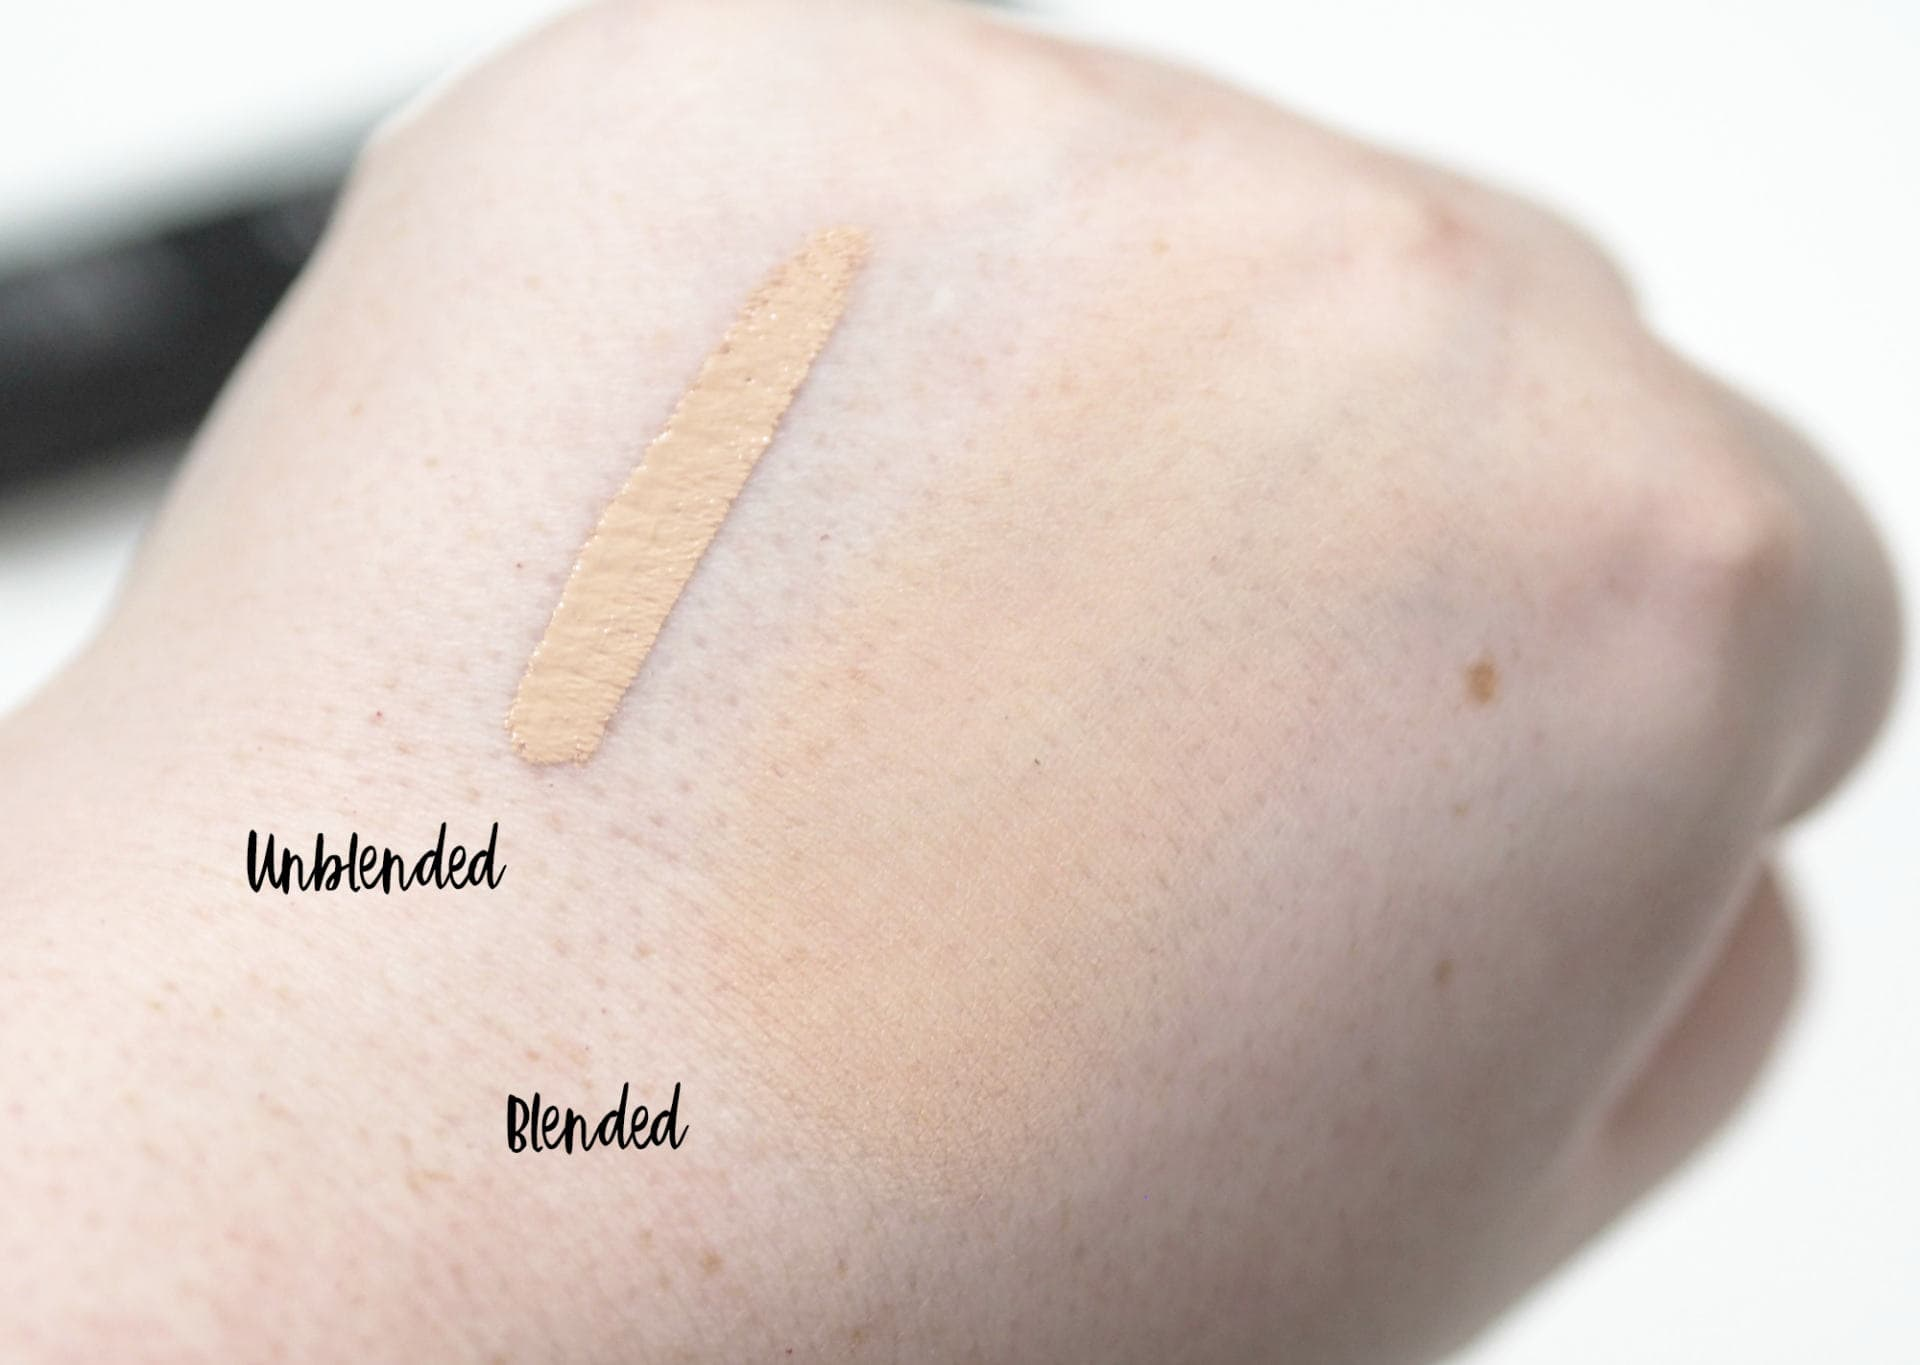 Morphe Base Collection Review and Swatches - Concealer, Foundation, Powder and Primer - Cult Beauty Brand of the Month October 2019